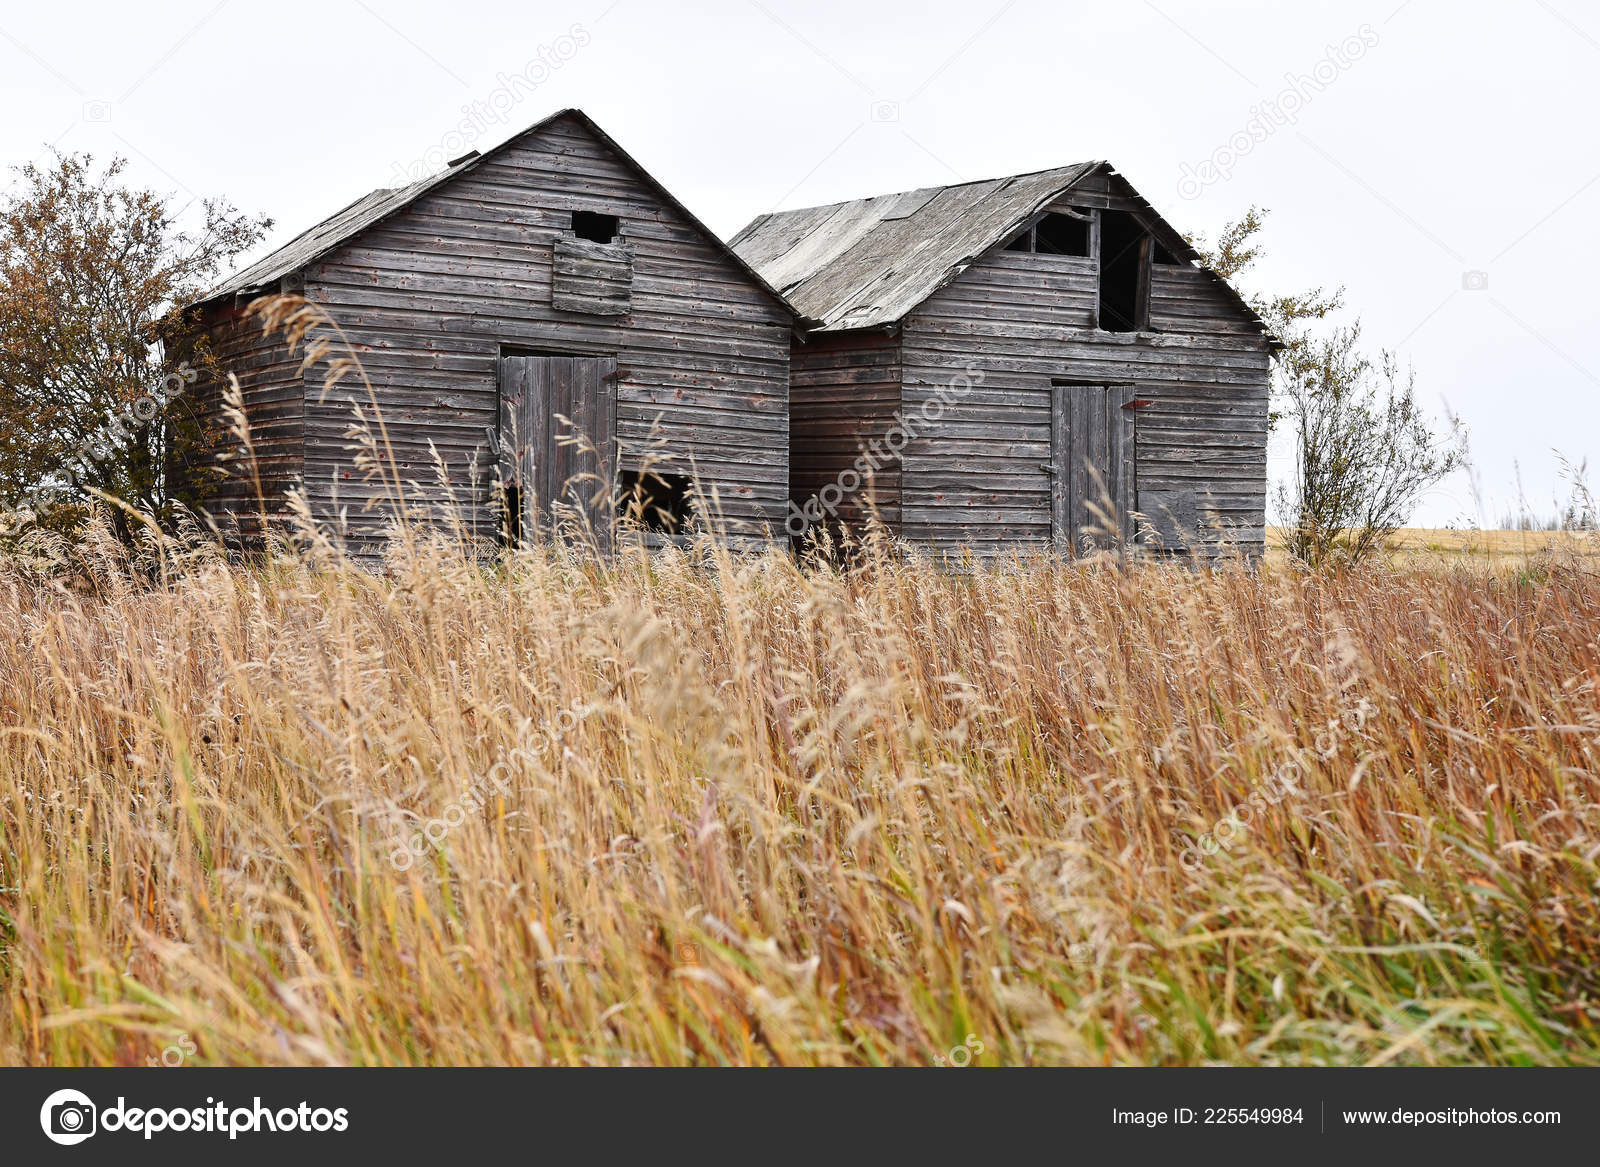 Image Old Run Agricultural Storage Sheds Middle Hay Field